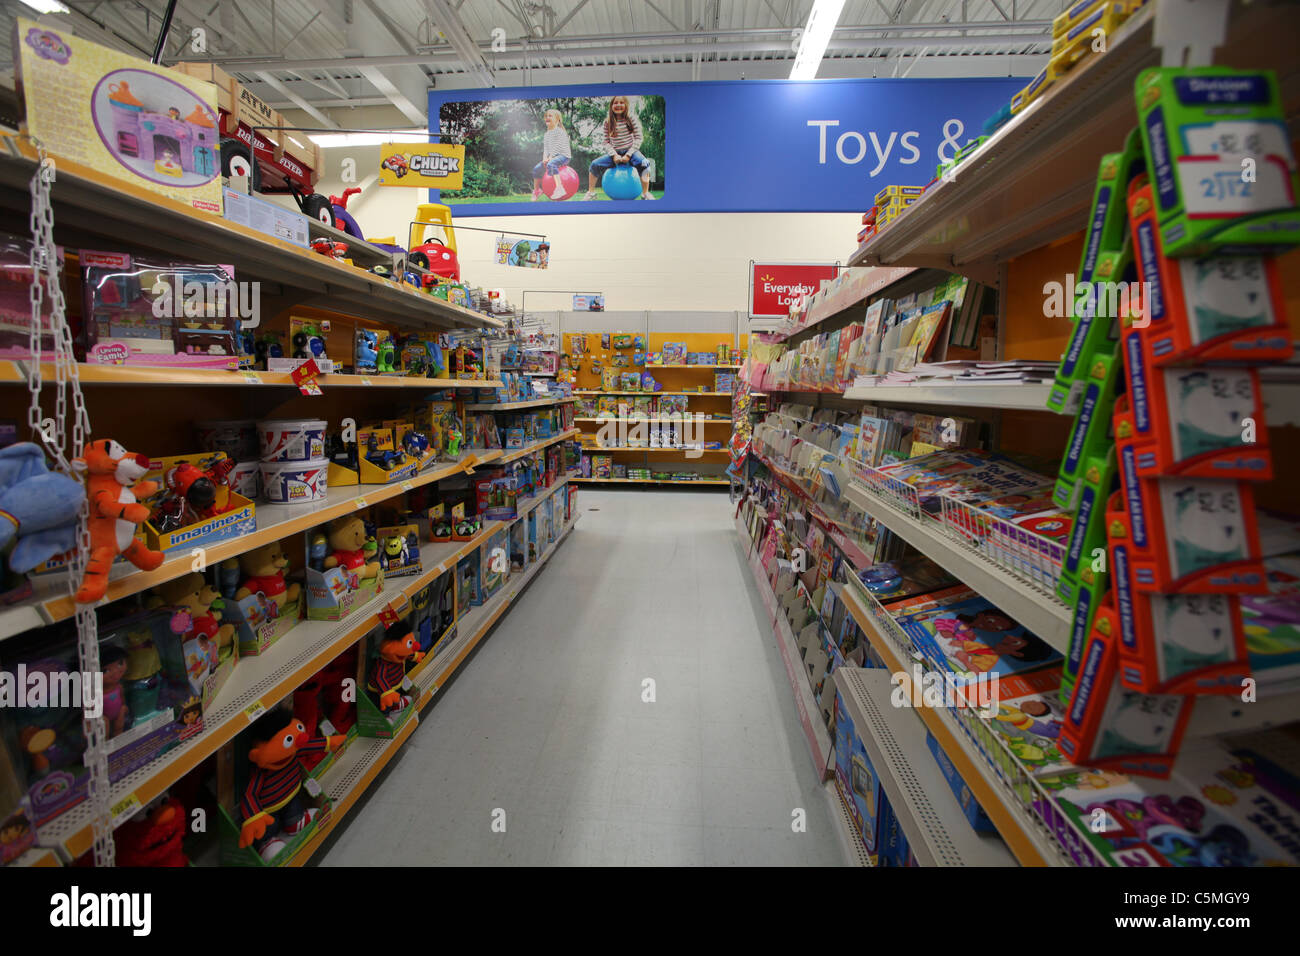 Toys From Walmart : Walmart toys and games section in supercentre